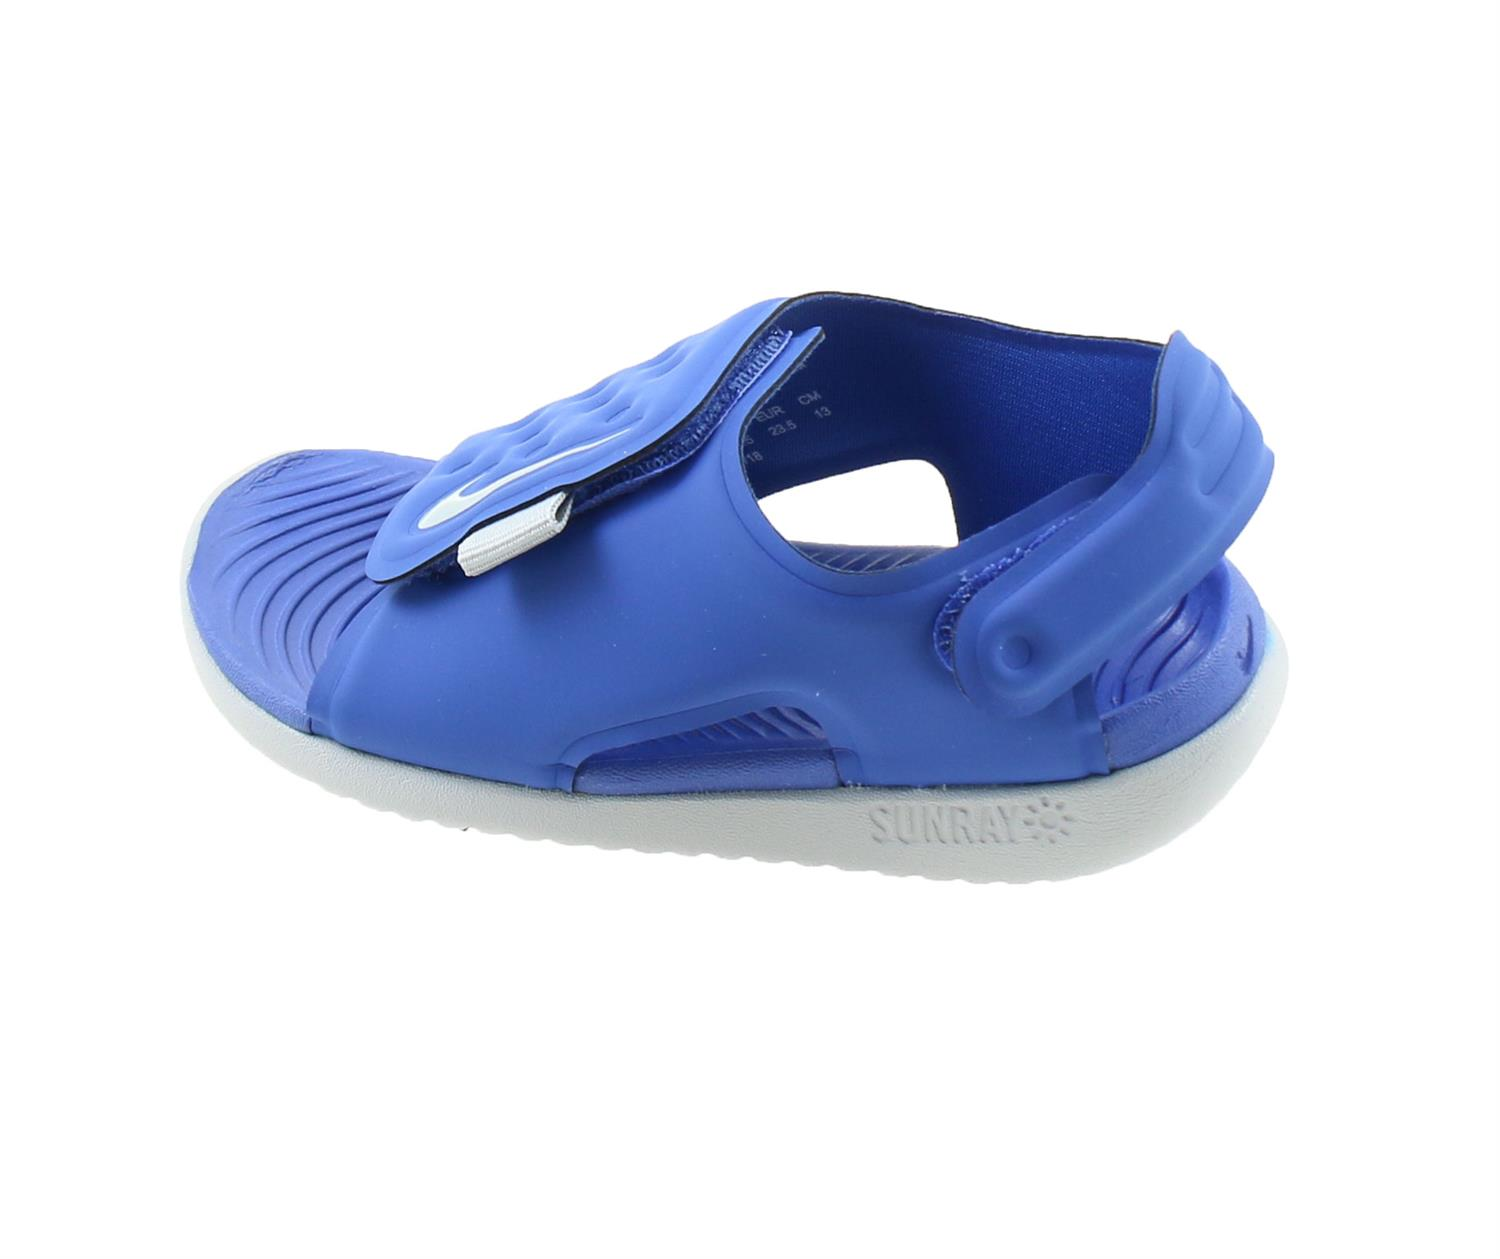 c79a3b0a97d Nike Sunray Adjust 5 Peuter Sandalen. AJ9077 400 Game Royal Wolf Grey.  Product afbeelding Product afbeelding Product afbeelding Product afbeelding